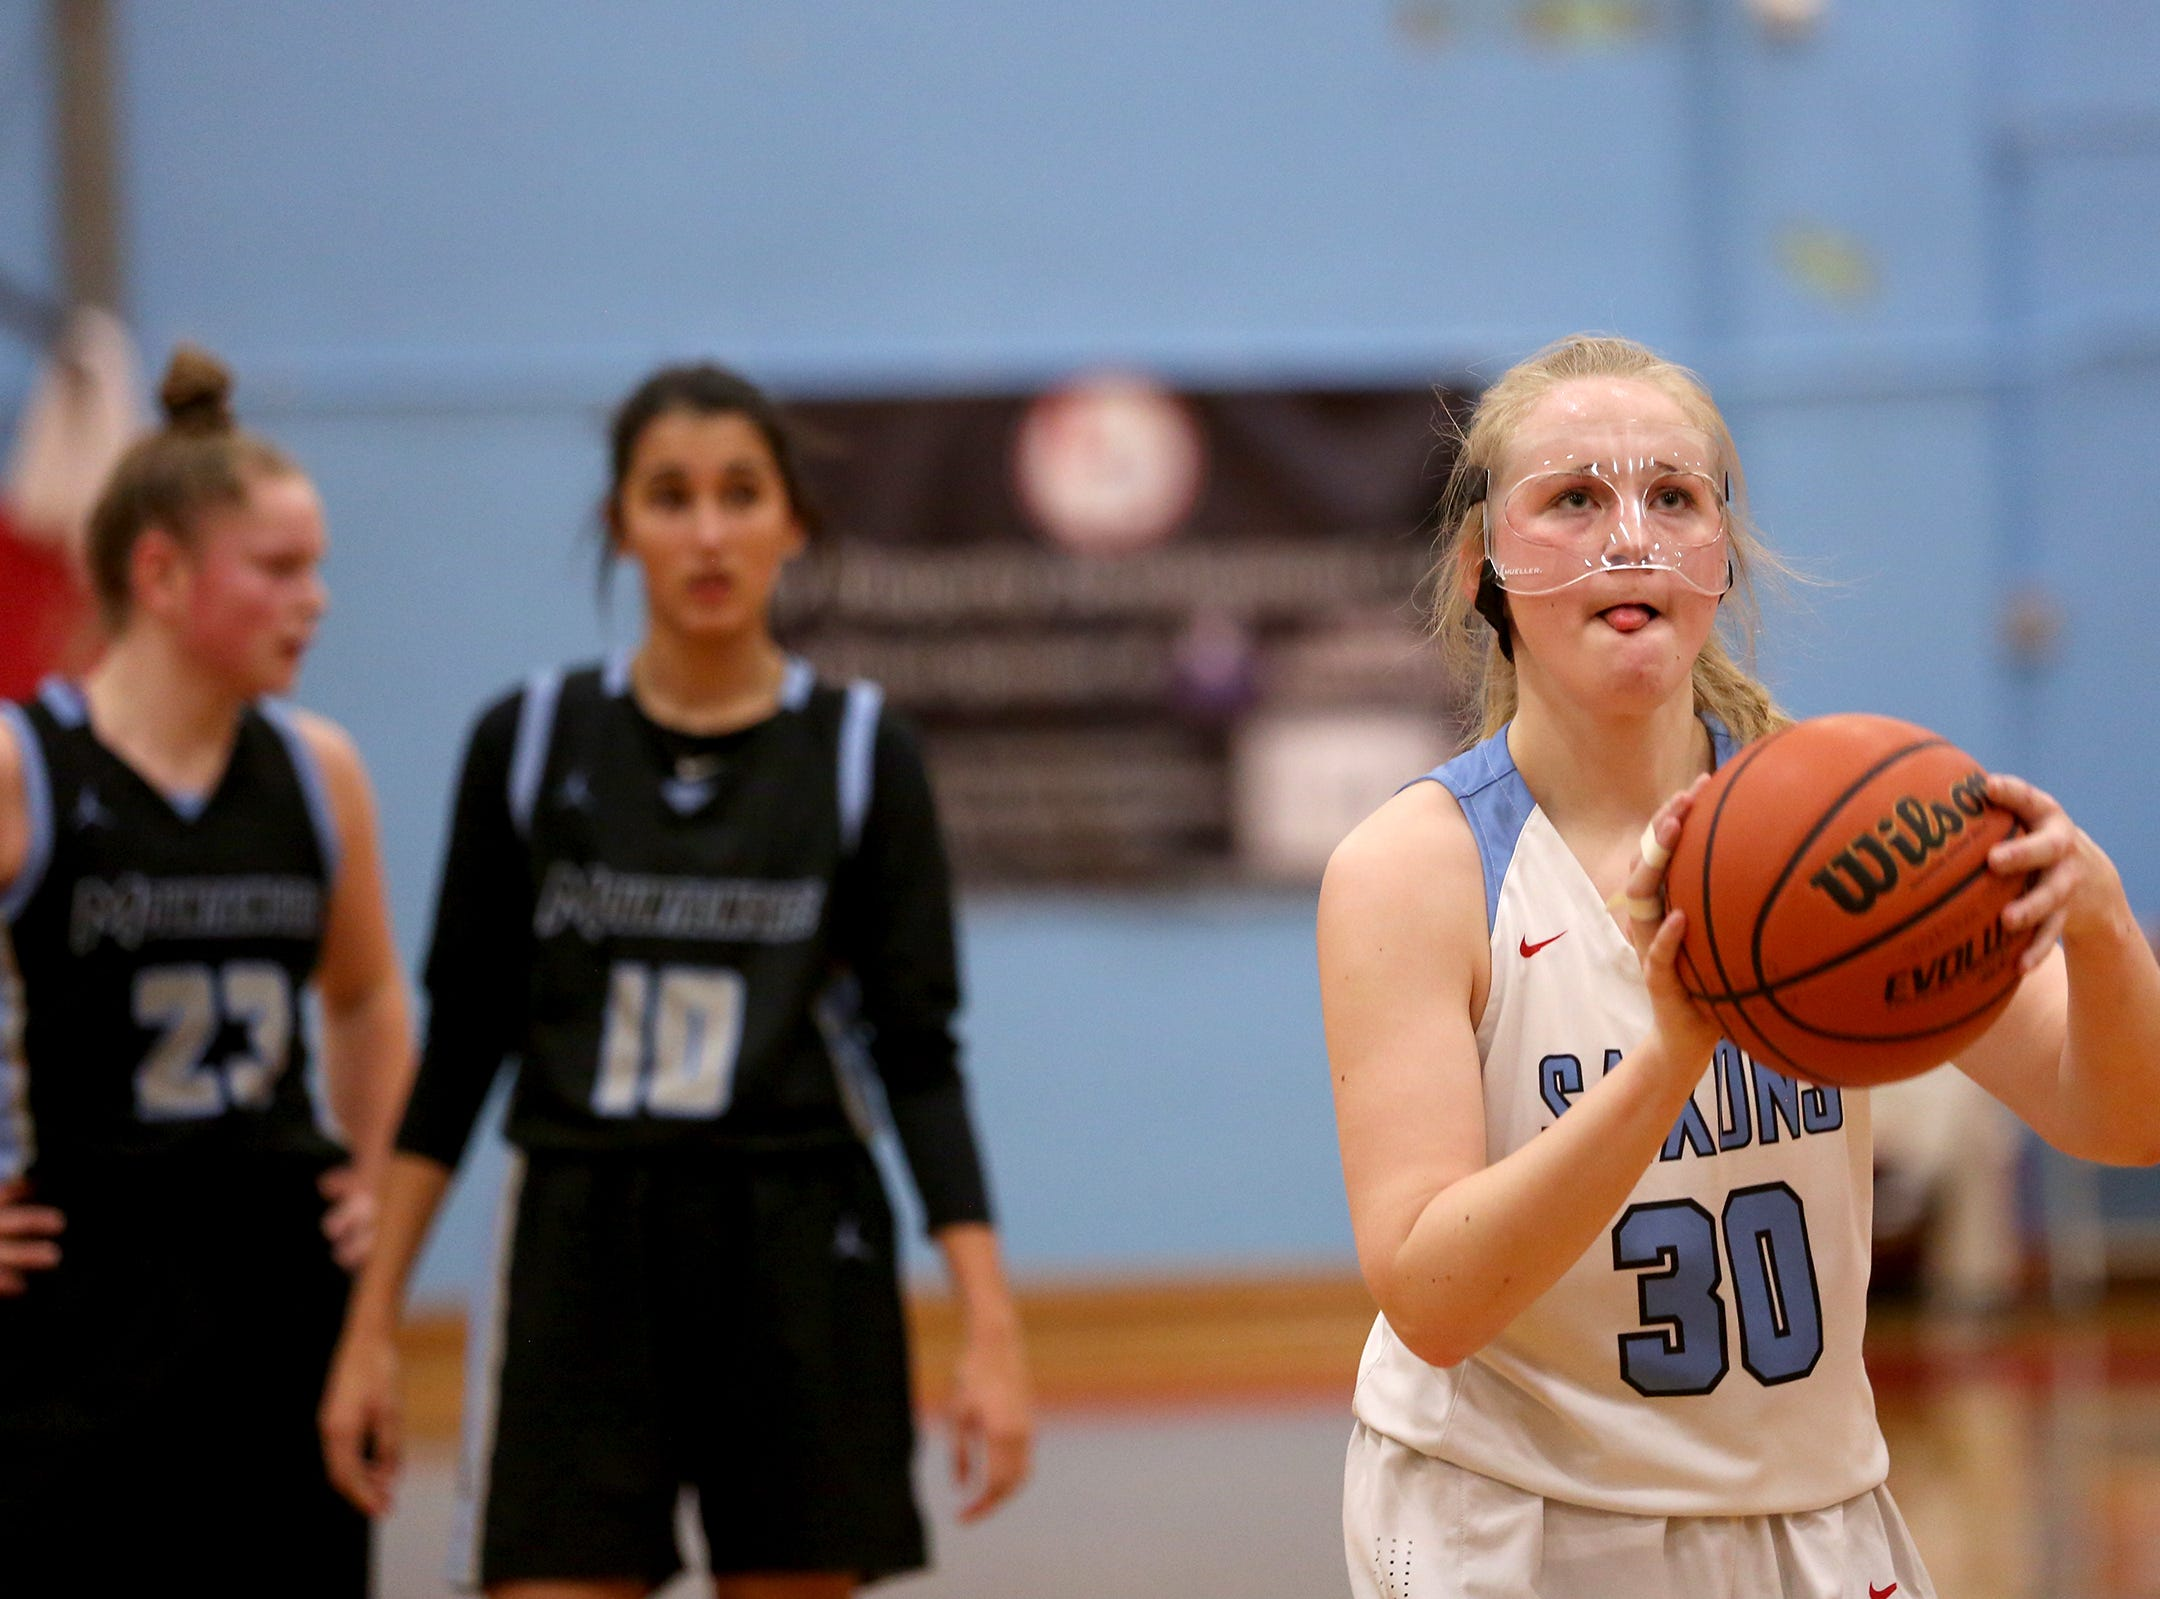 South Salem's Gretchen Olsen (30) gets two shots at the line during the South Salem vs. Mountainside girls basketball OSAA playoff game in Salem on Thursday, Feb. 28, 2019.